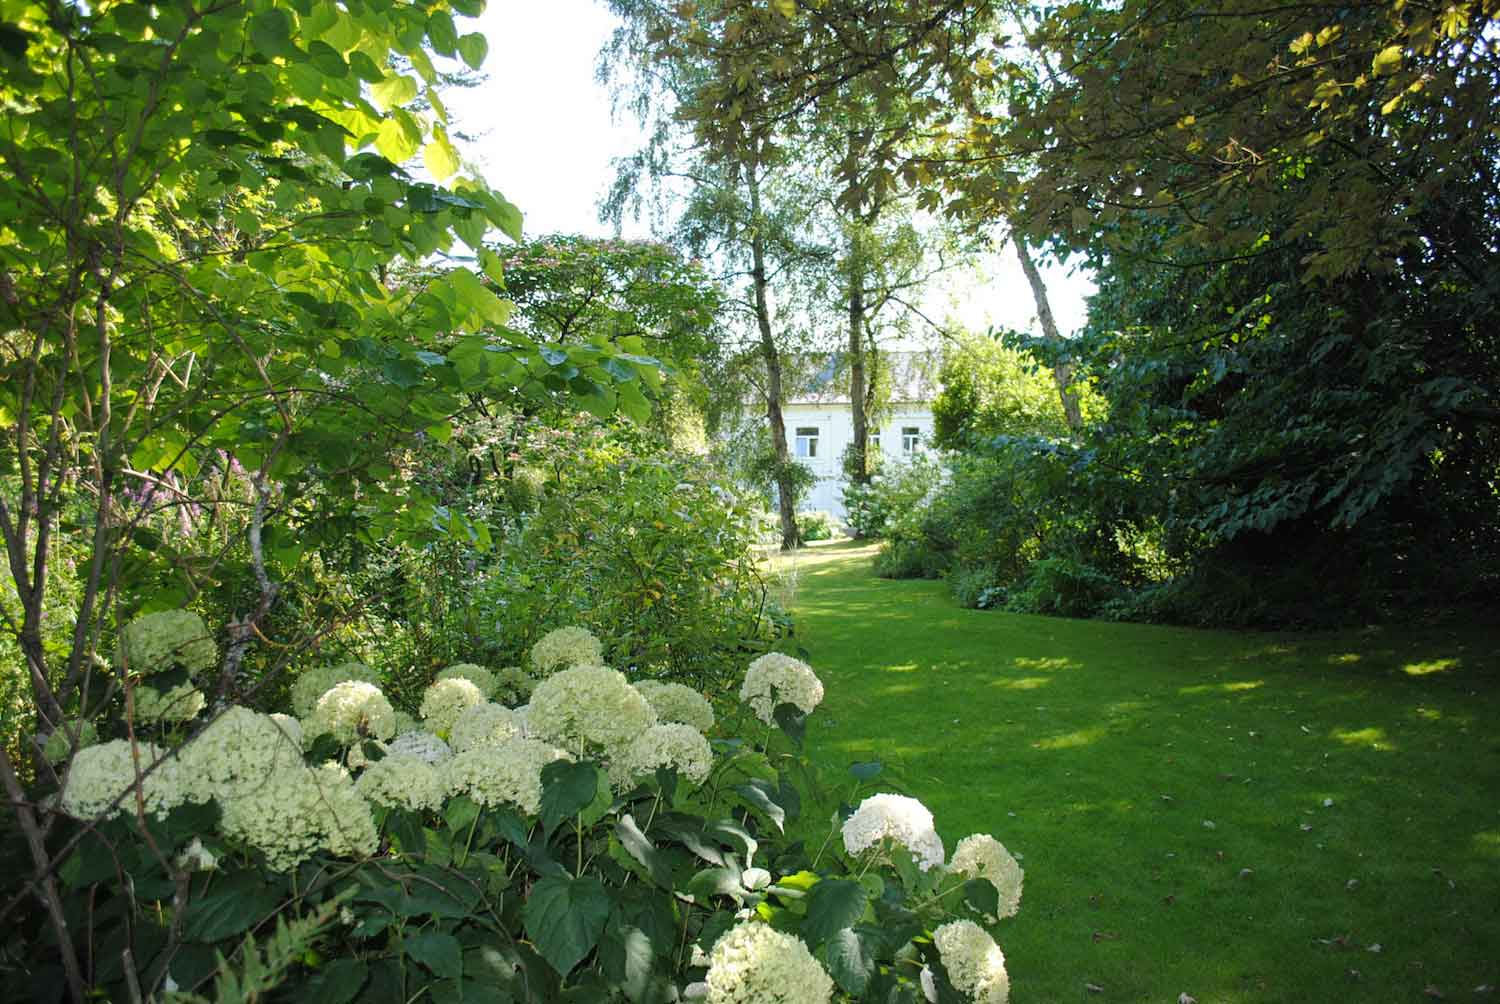 Gardens and Other Stories - Séricourt: Reflections on War ...